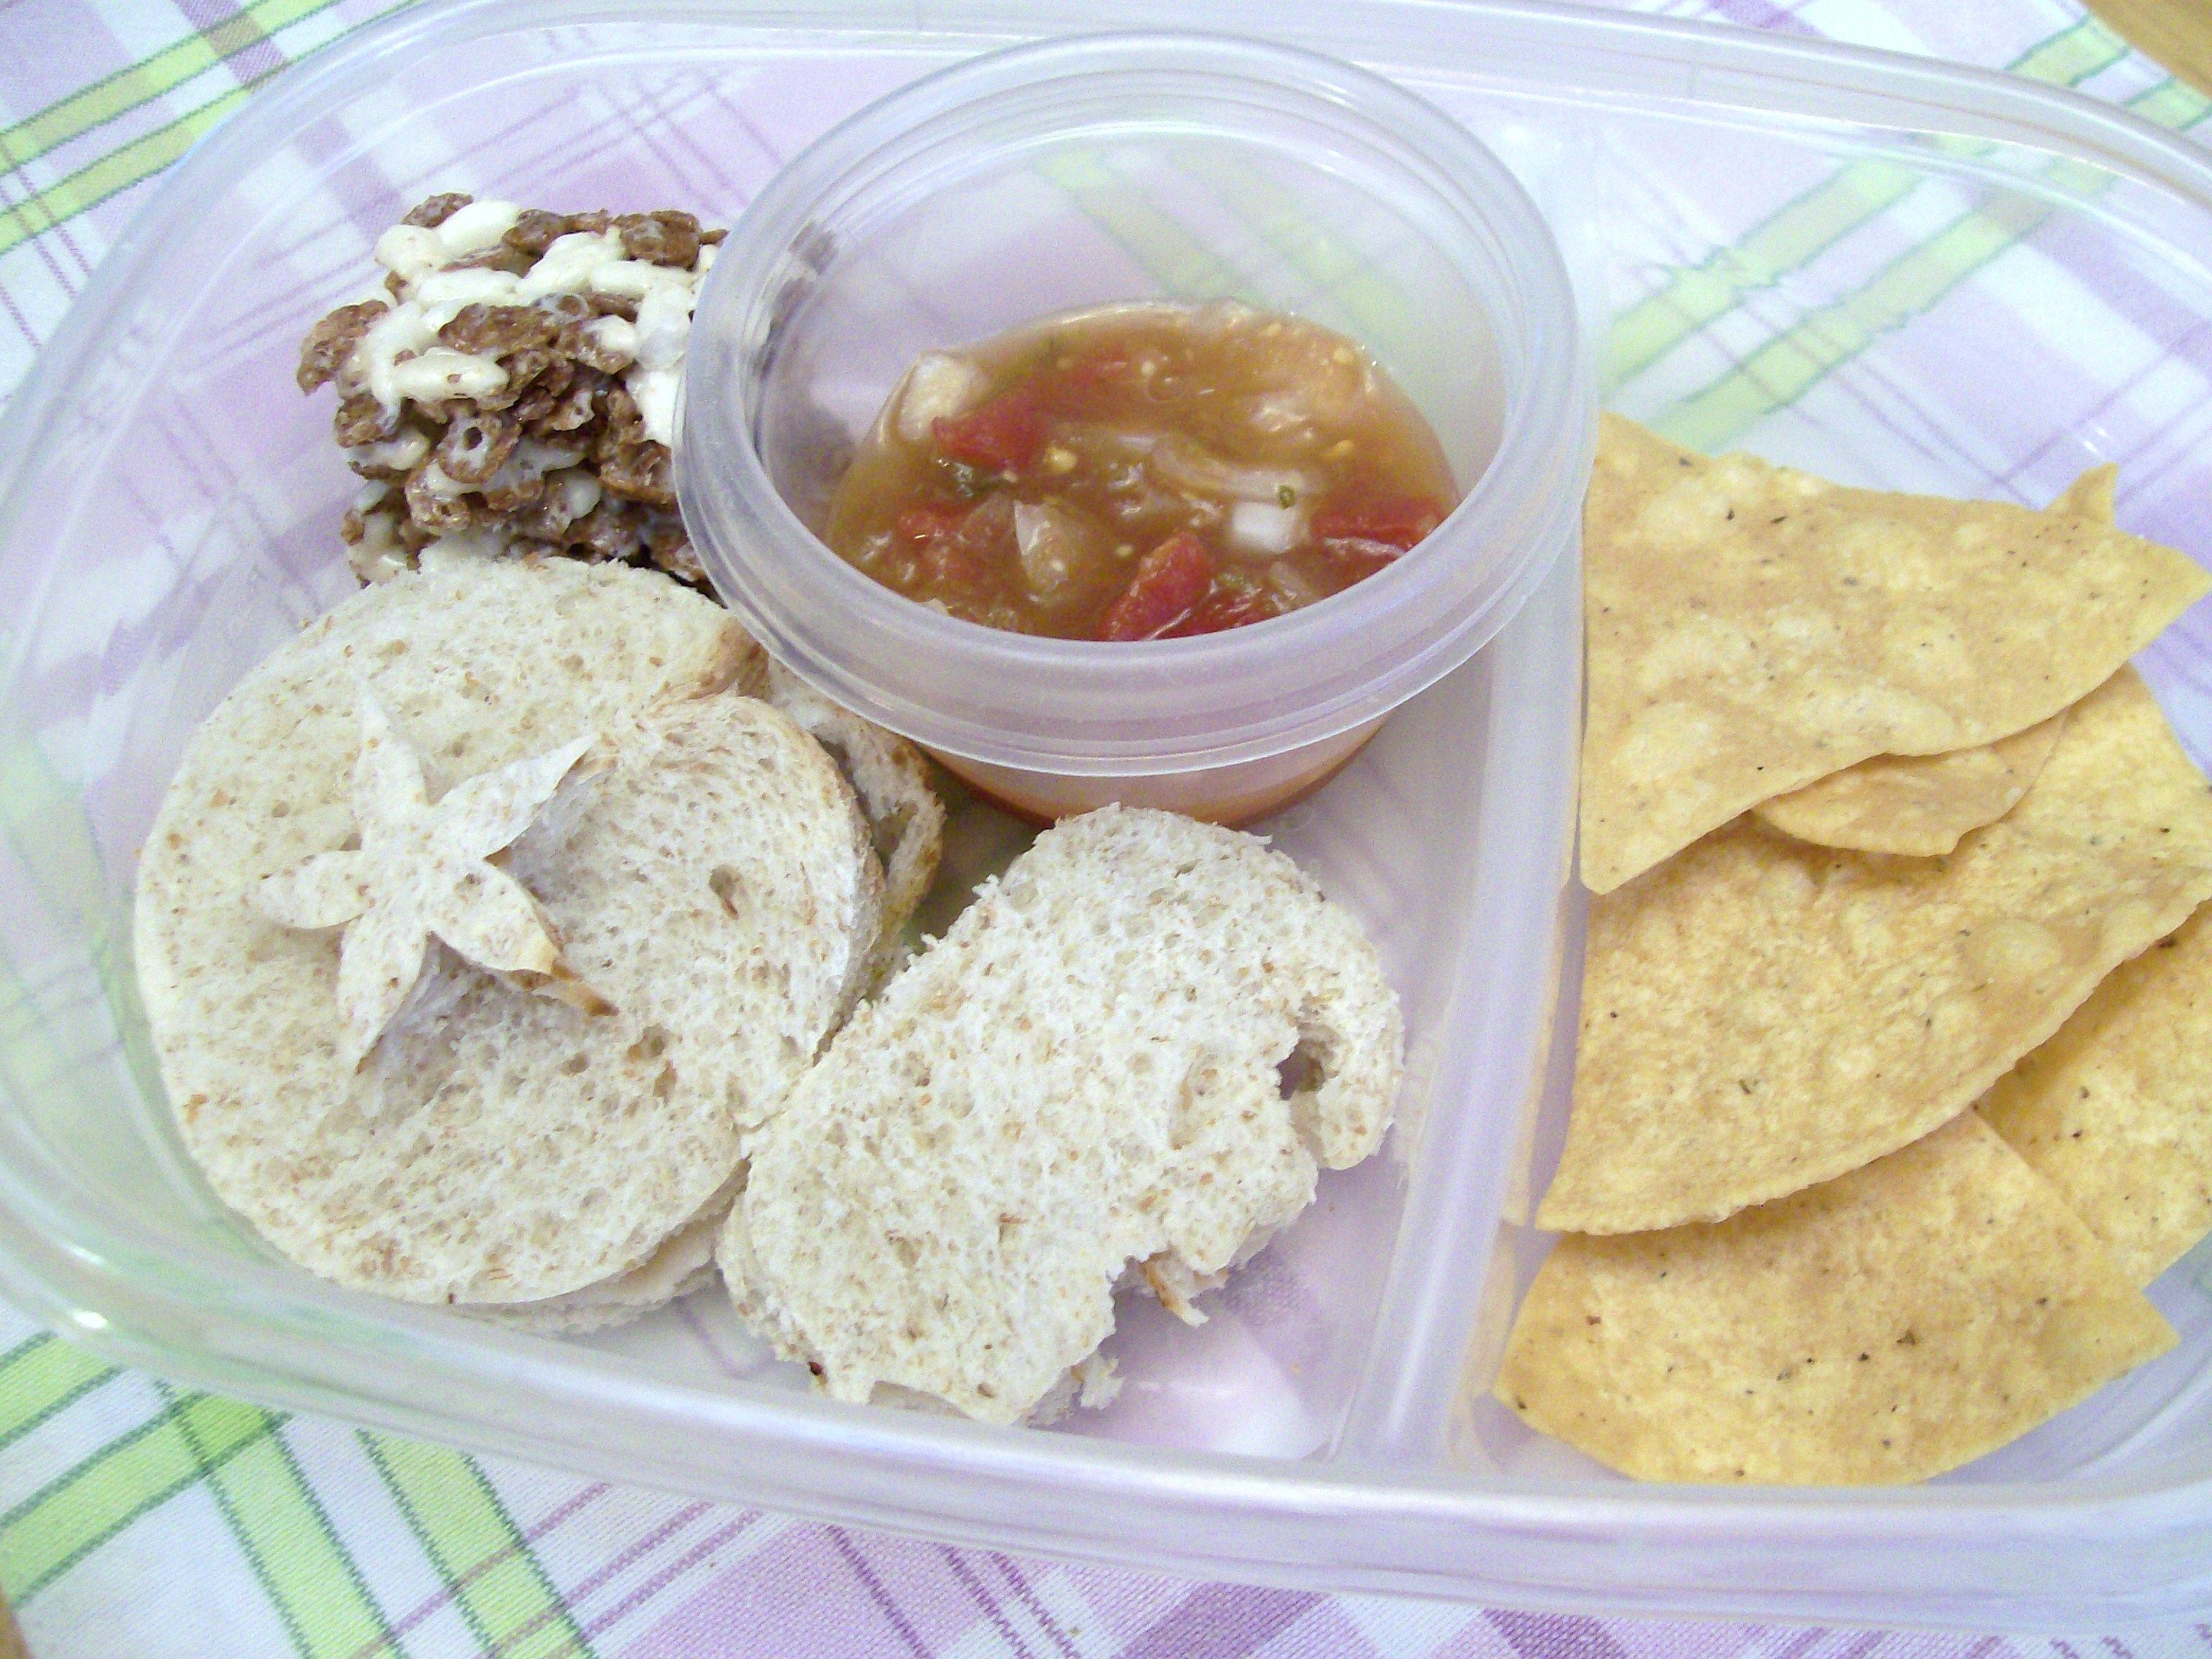 chips, salsa and shaped PB&J